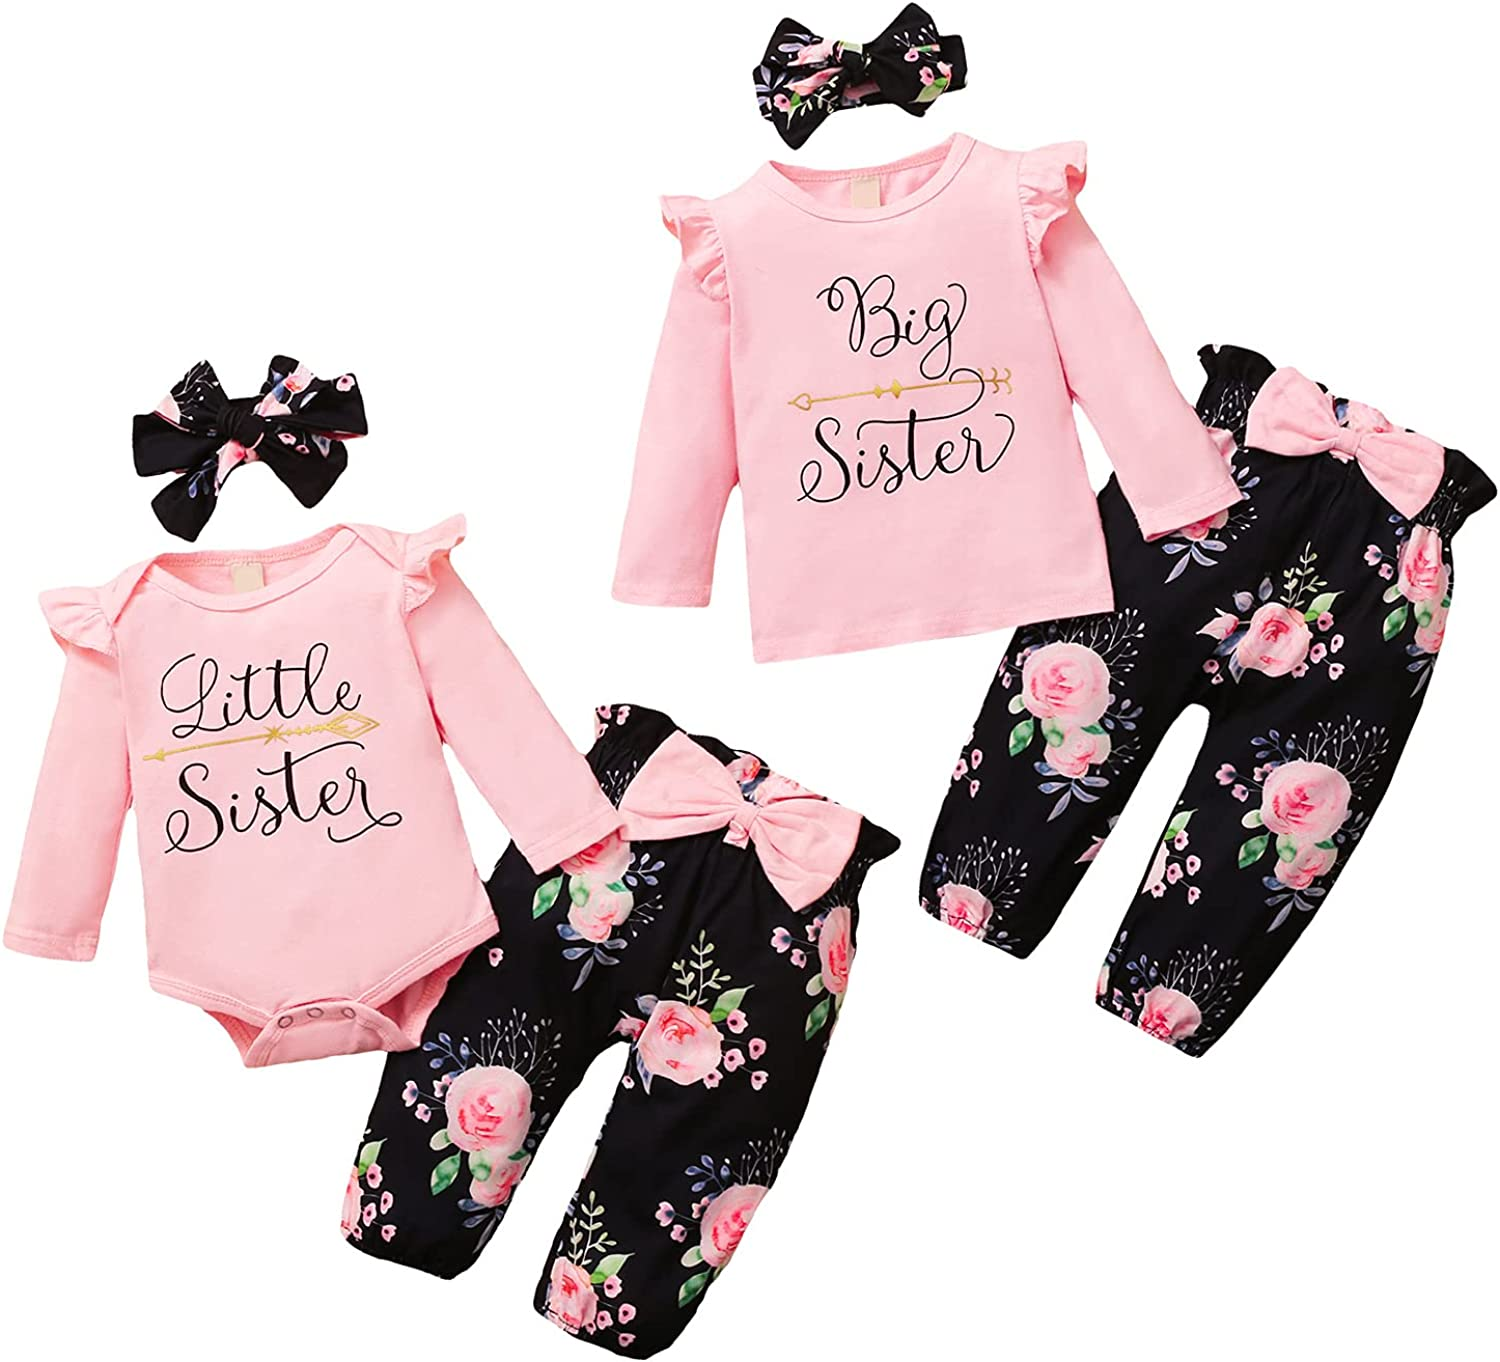 Baby Girls Sister Matching Outfits Little Sister Big Sister Ruffle Long Sleeve Romper Top Floral Pants Set + Headband 3Pcs